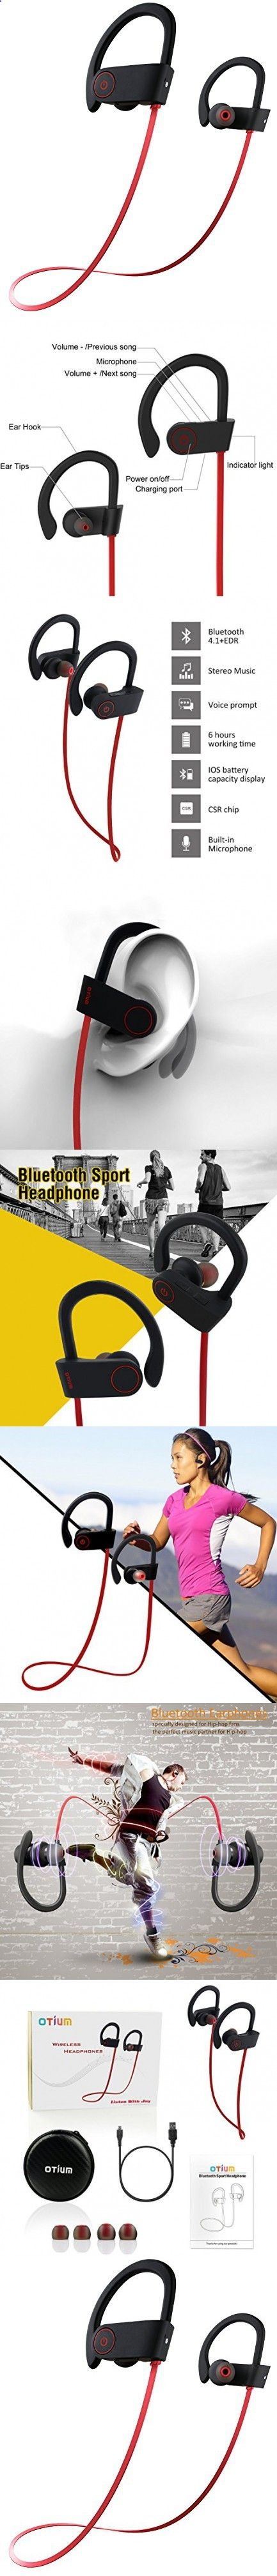 Sports Headphones - Otium Wireless Bluetooth Sports Headphones In-Ear Earbuds Sweatproof Earphones Stereo with Mic Bass Noise Cancelling Bluetooth V4.1 for iPhone Android Smartphones - If you usually go out to run, walk or any other sport in which you usually carry music to accompany or motivate you, we have selected 13 models of sports headphones that we consider among the best in the market for different aspects, from comfort to use to design, sound quality or value for money, so tha...